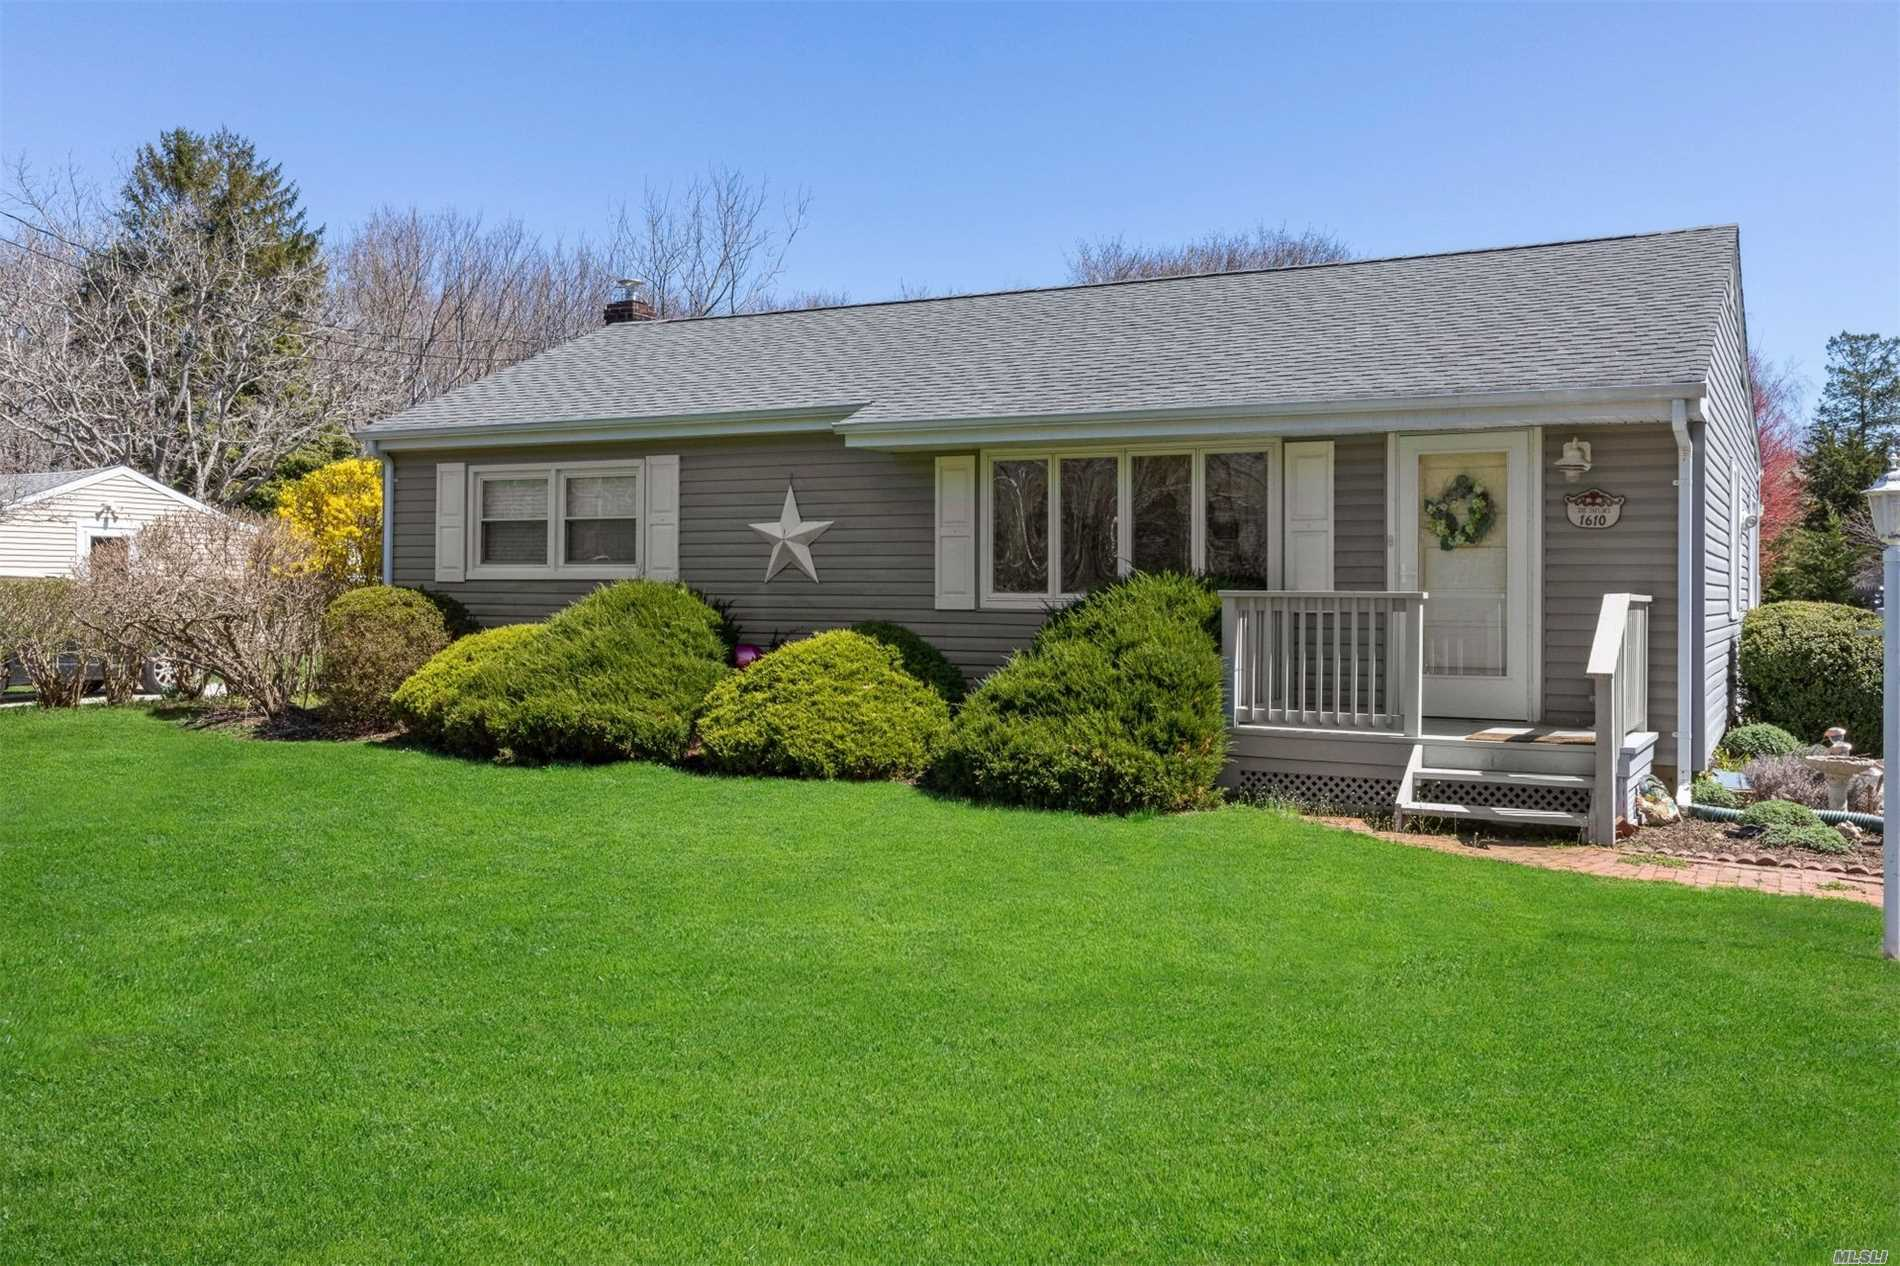 3 bedroom, 1 bath ranch with lower level family room with full bath. Conveniently located just minutes to town and nearby beaches. The perfect starter or retirement home!